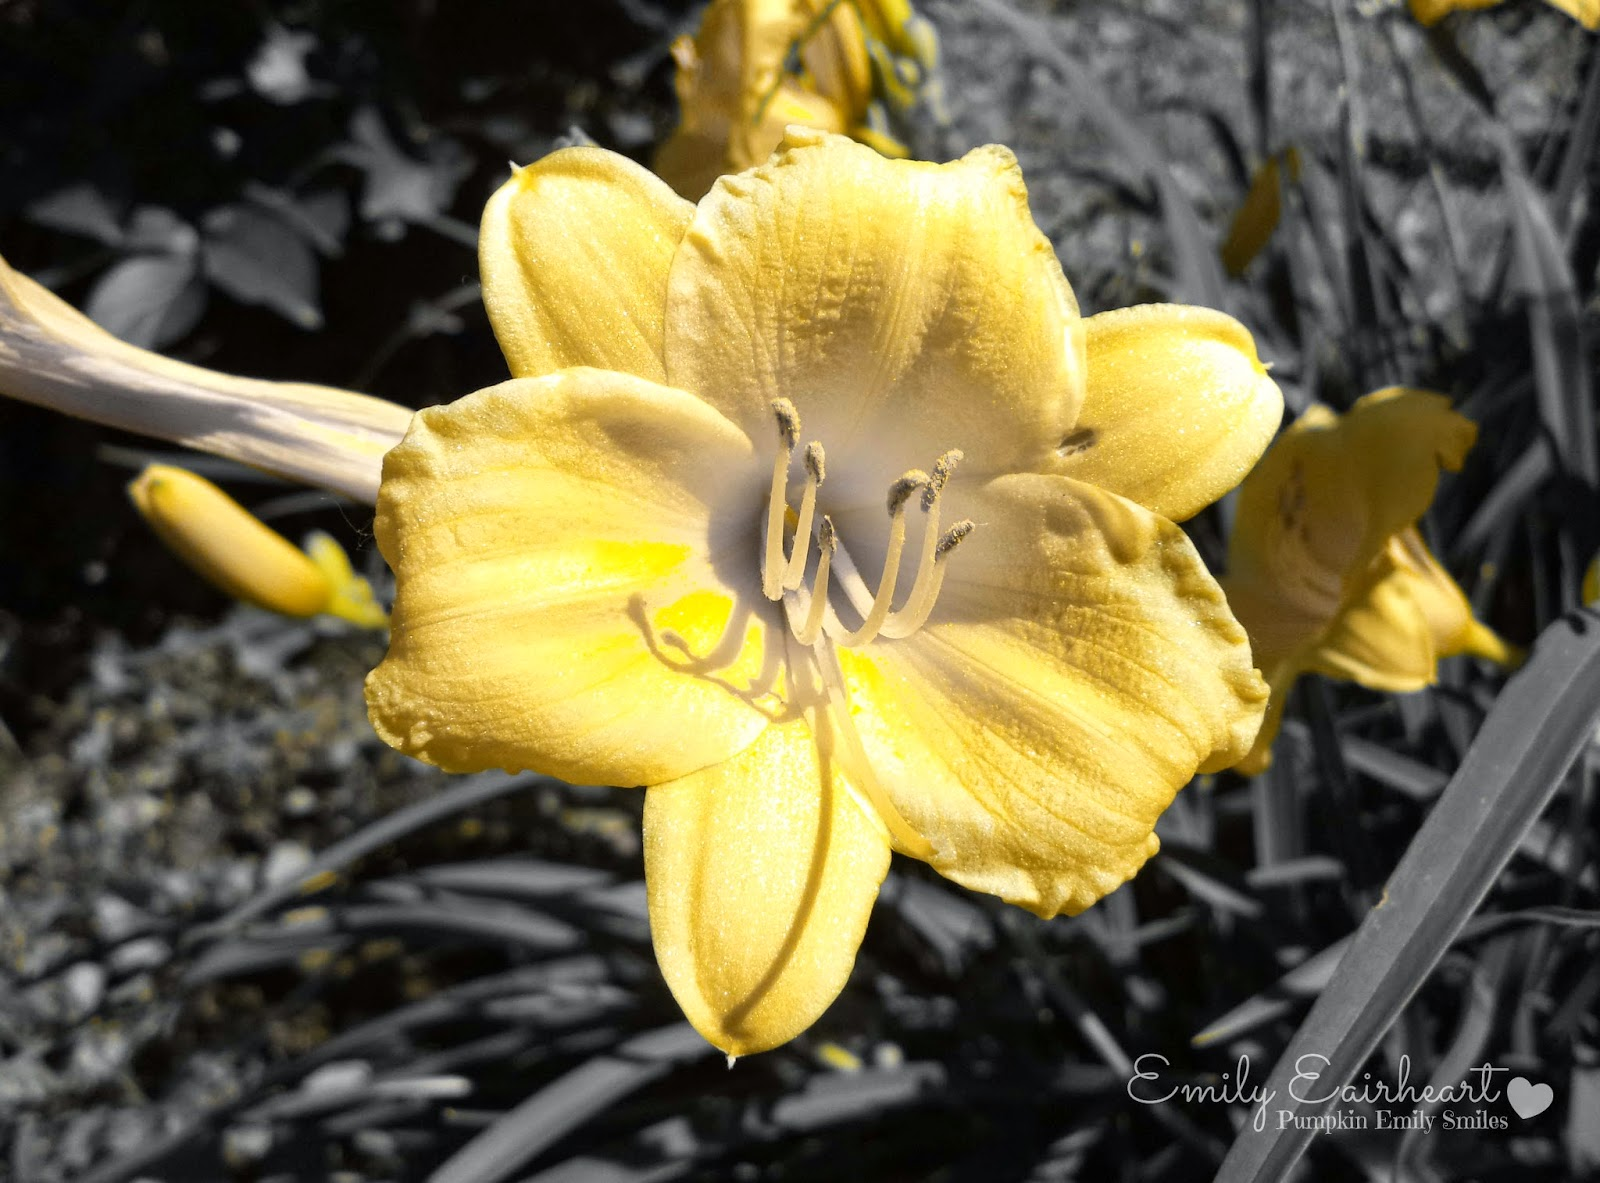 Black and white background and a yellow Lily